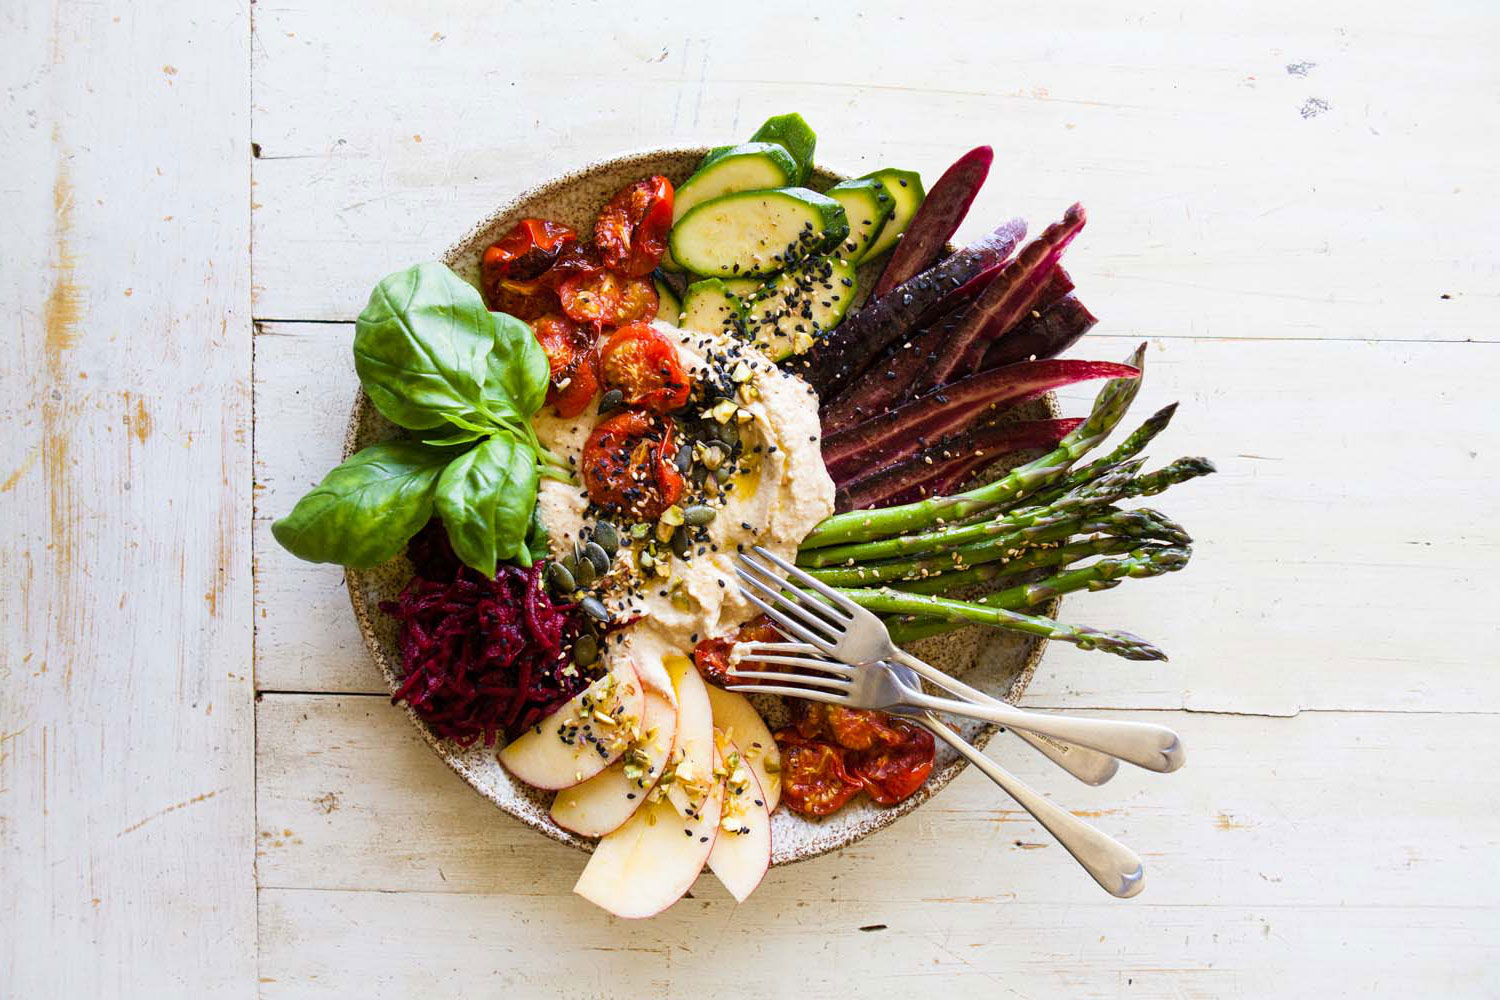 CREATE A HEALTHY GRAZING PLATTER